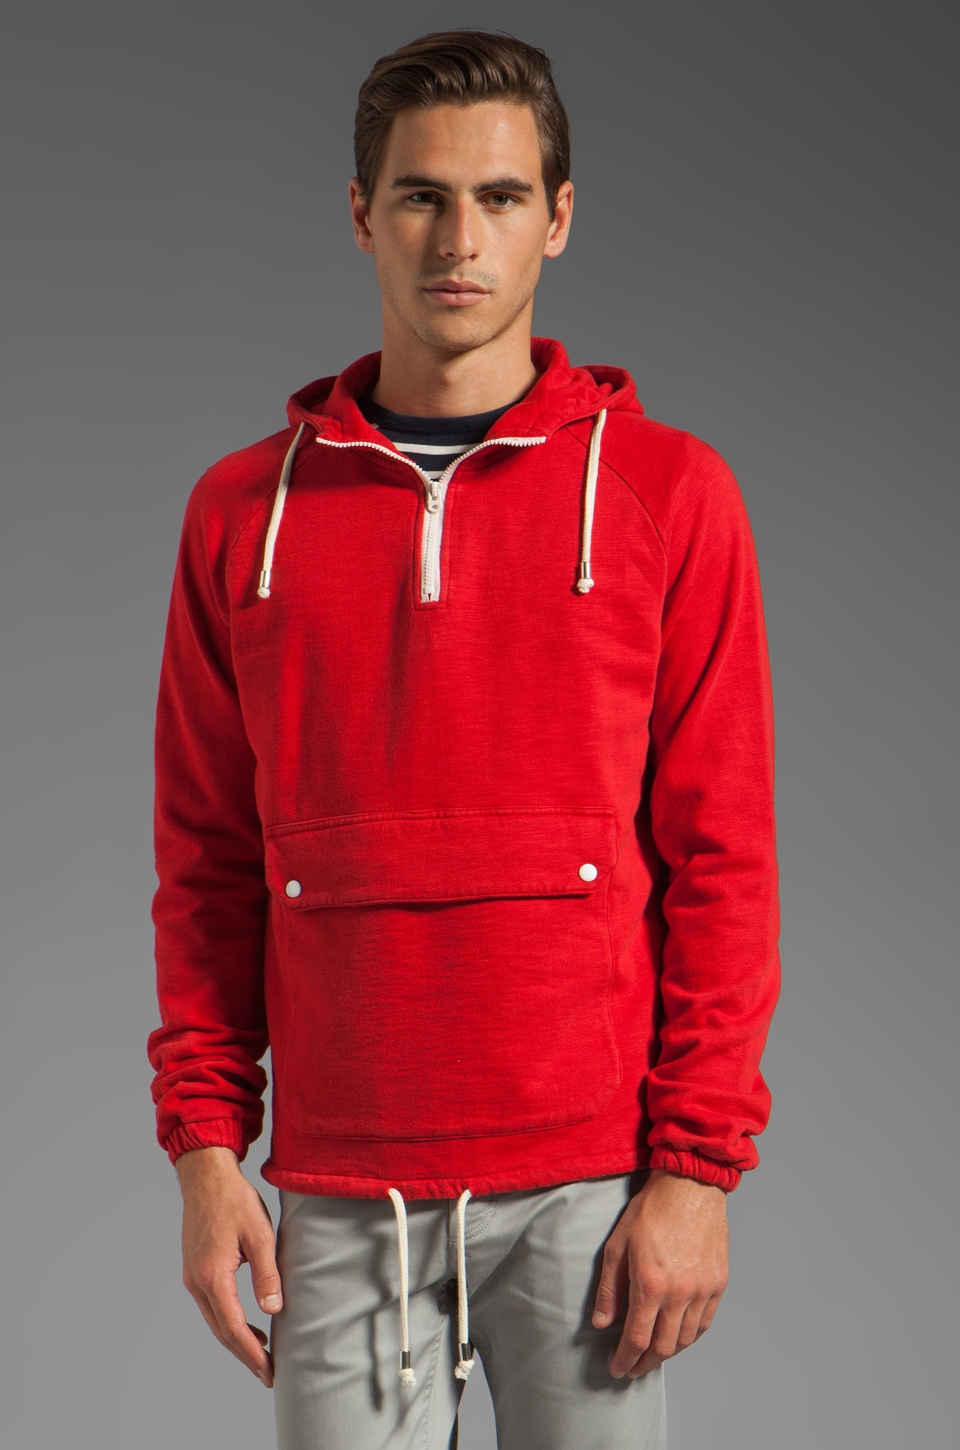 Shades of Grey by Micah Cohen Fleece Anorak in Red